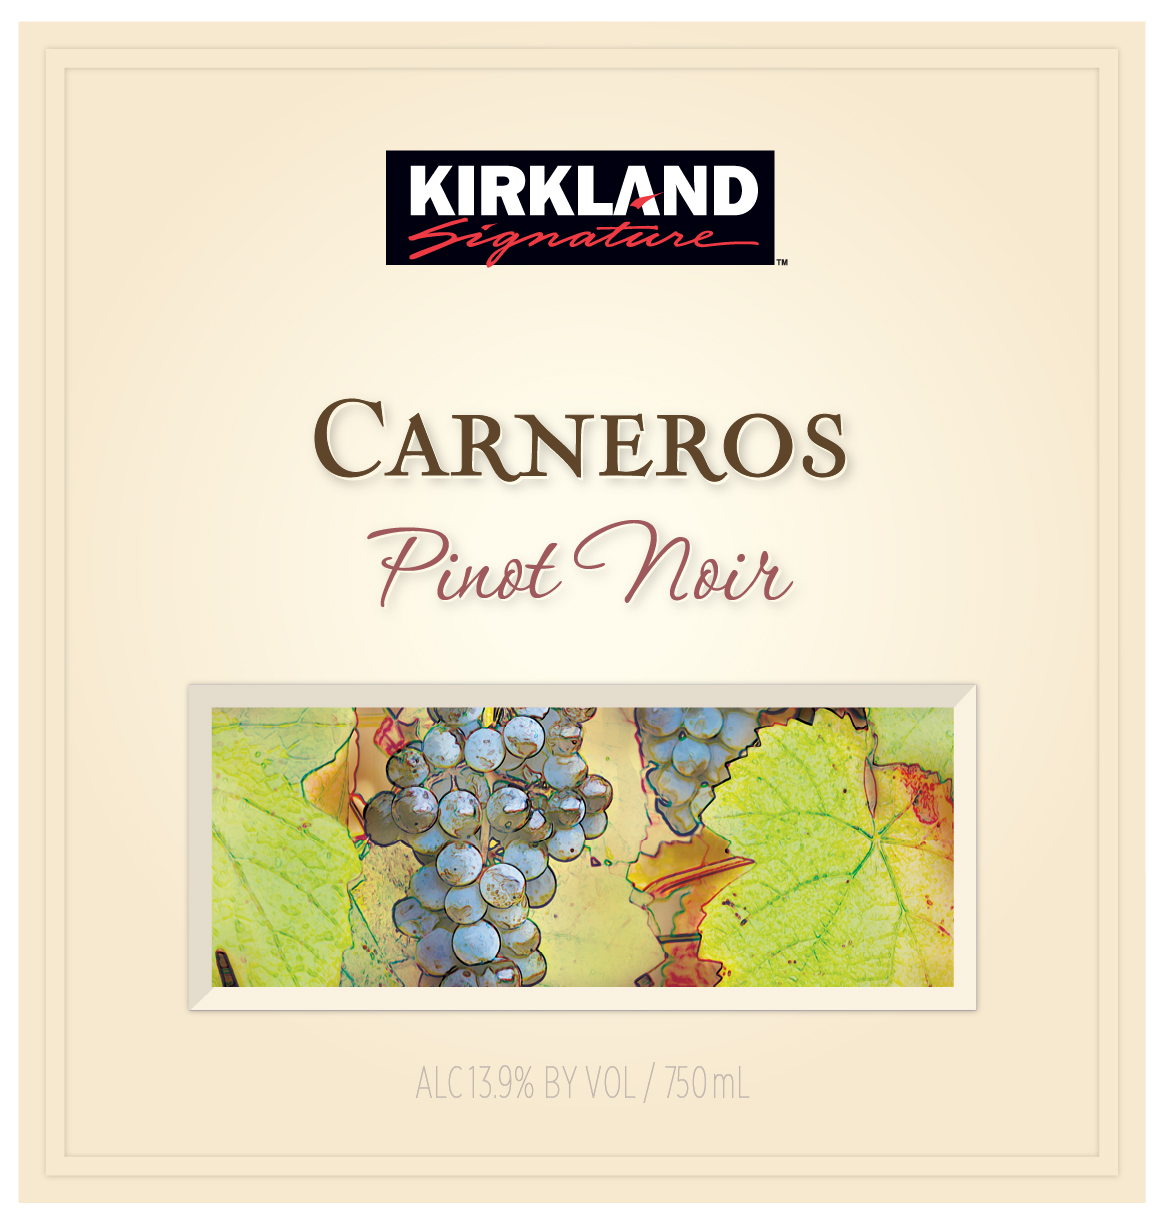 """""""The Kirkland Signature Carneros Pinot Noir is a blend of richness and elegance. The Napa Valley edge of Carneros provides aromas of ripe cherry and rhubarb counterbalanced by darker, black fruit and forest floor notes from the western slopes. This is a classic Carneros Pinot Noir displaying rich aromas and complex flavors woven together with a hint of spice from French oak barrels."""" ALISON CROWE, Winemaker."""